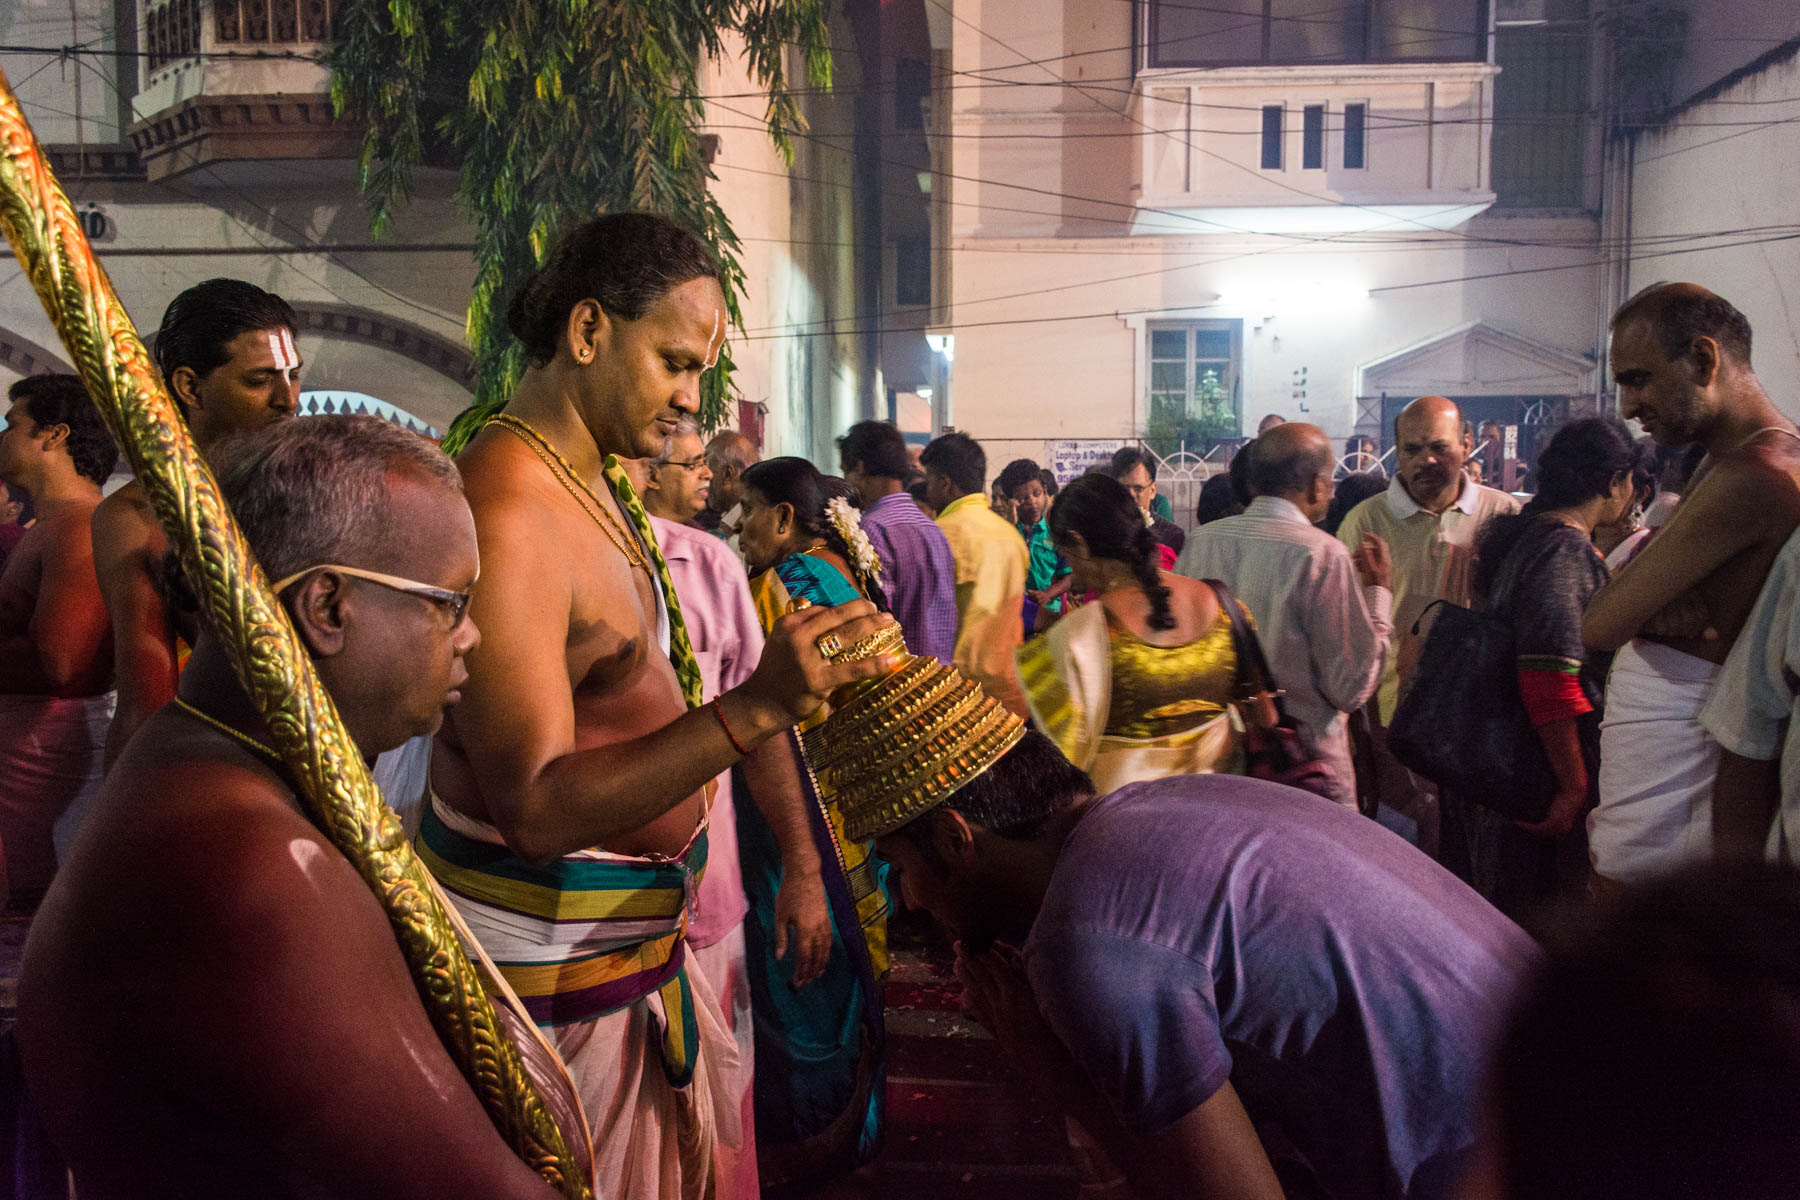 Receiving a blessing while celebrating Diwali in Chennai, India - Lost With Purpose